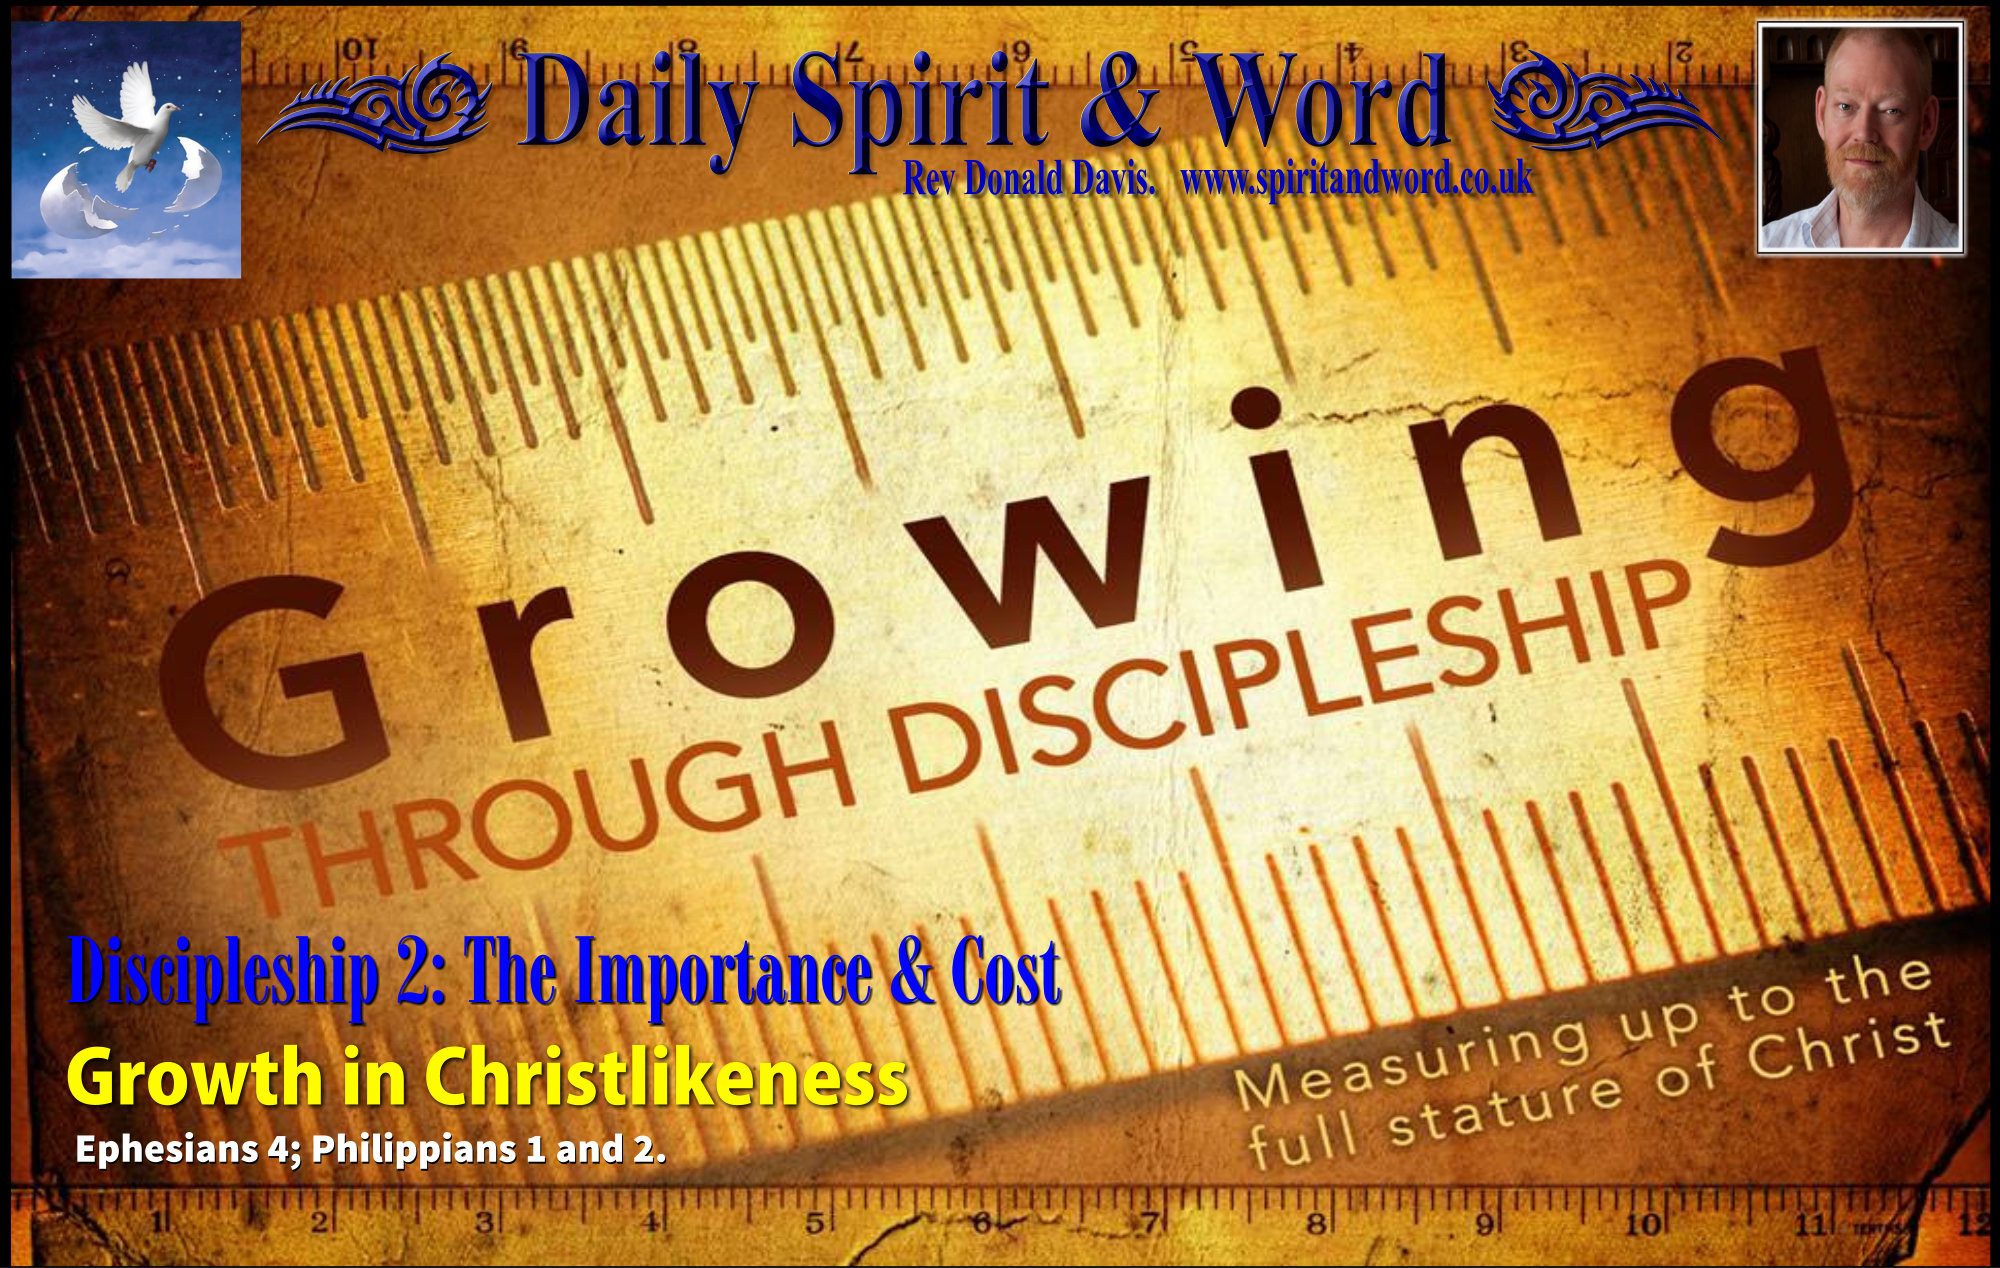 following Christ is costly, count the cost and follow Christ